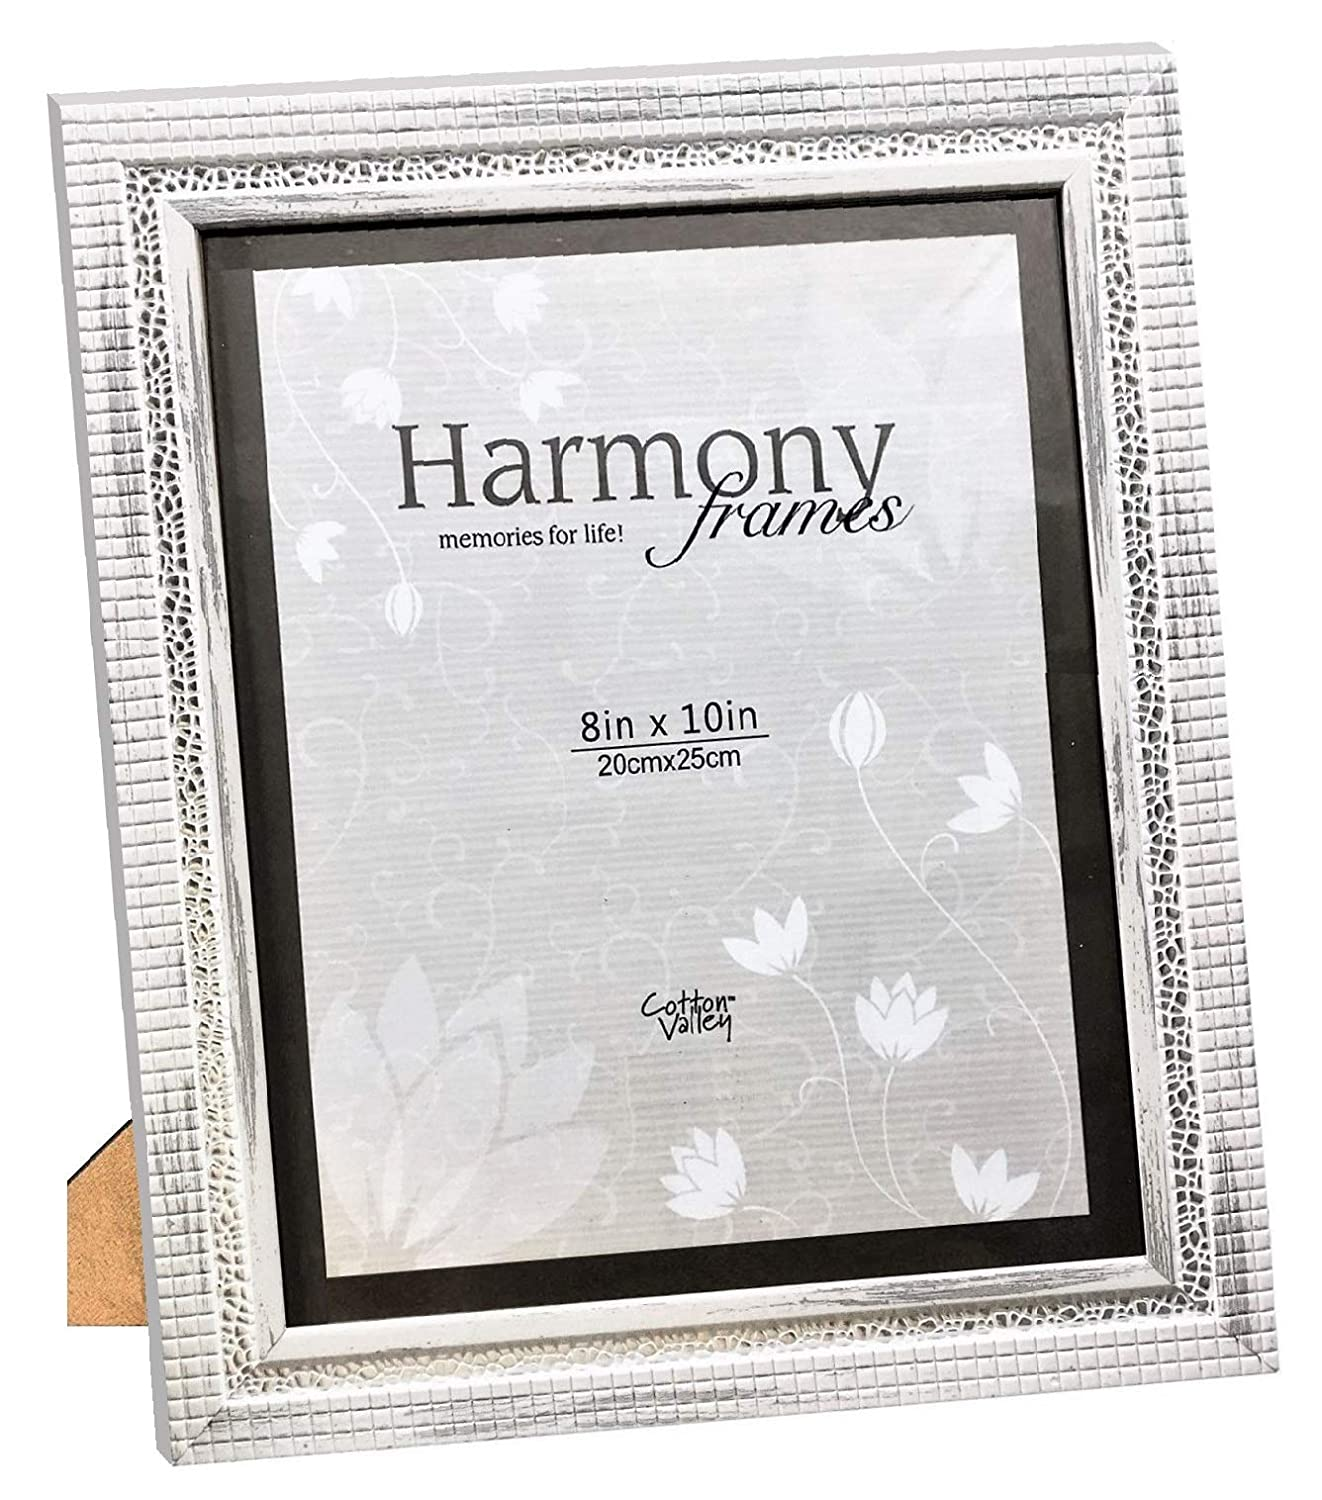 Distressed Off White Harmony Frames 8x10 Mosaic Wood Picture Frame Gallery Display Wall and Tabletop